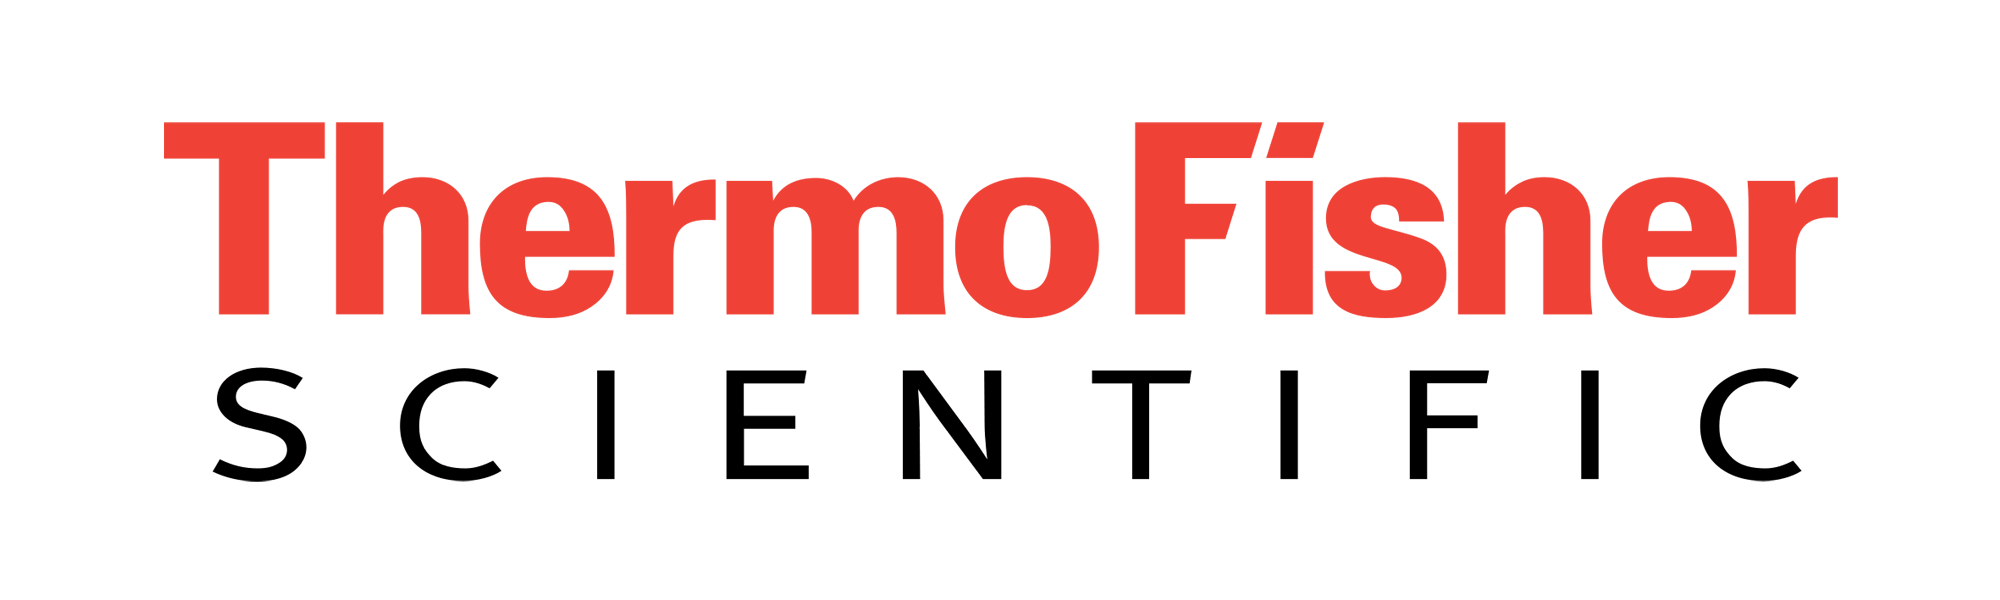 Thermo Fisher Logo for Cannabis Extraction testing services